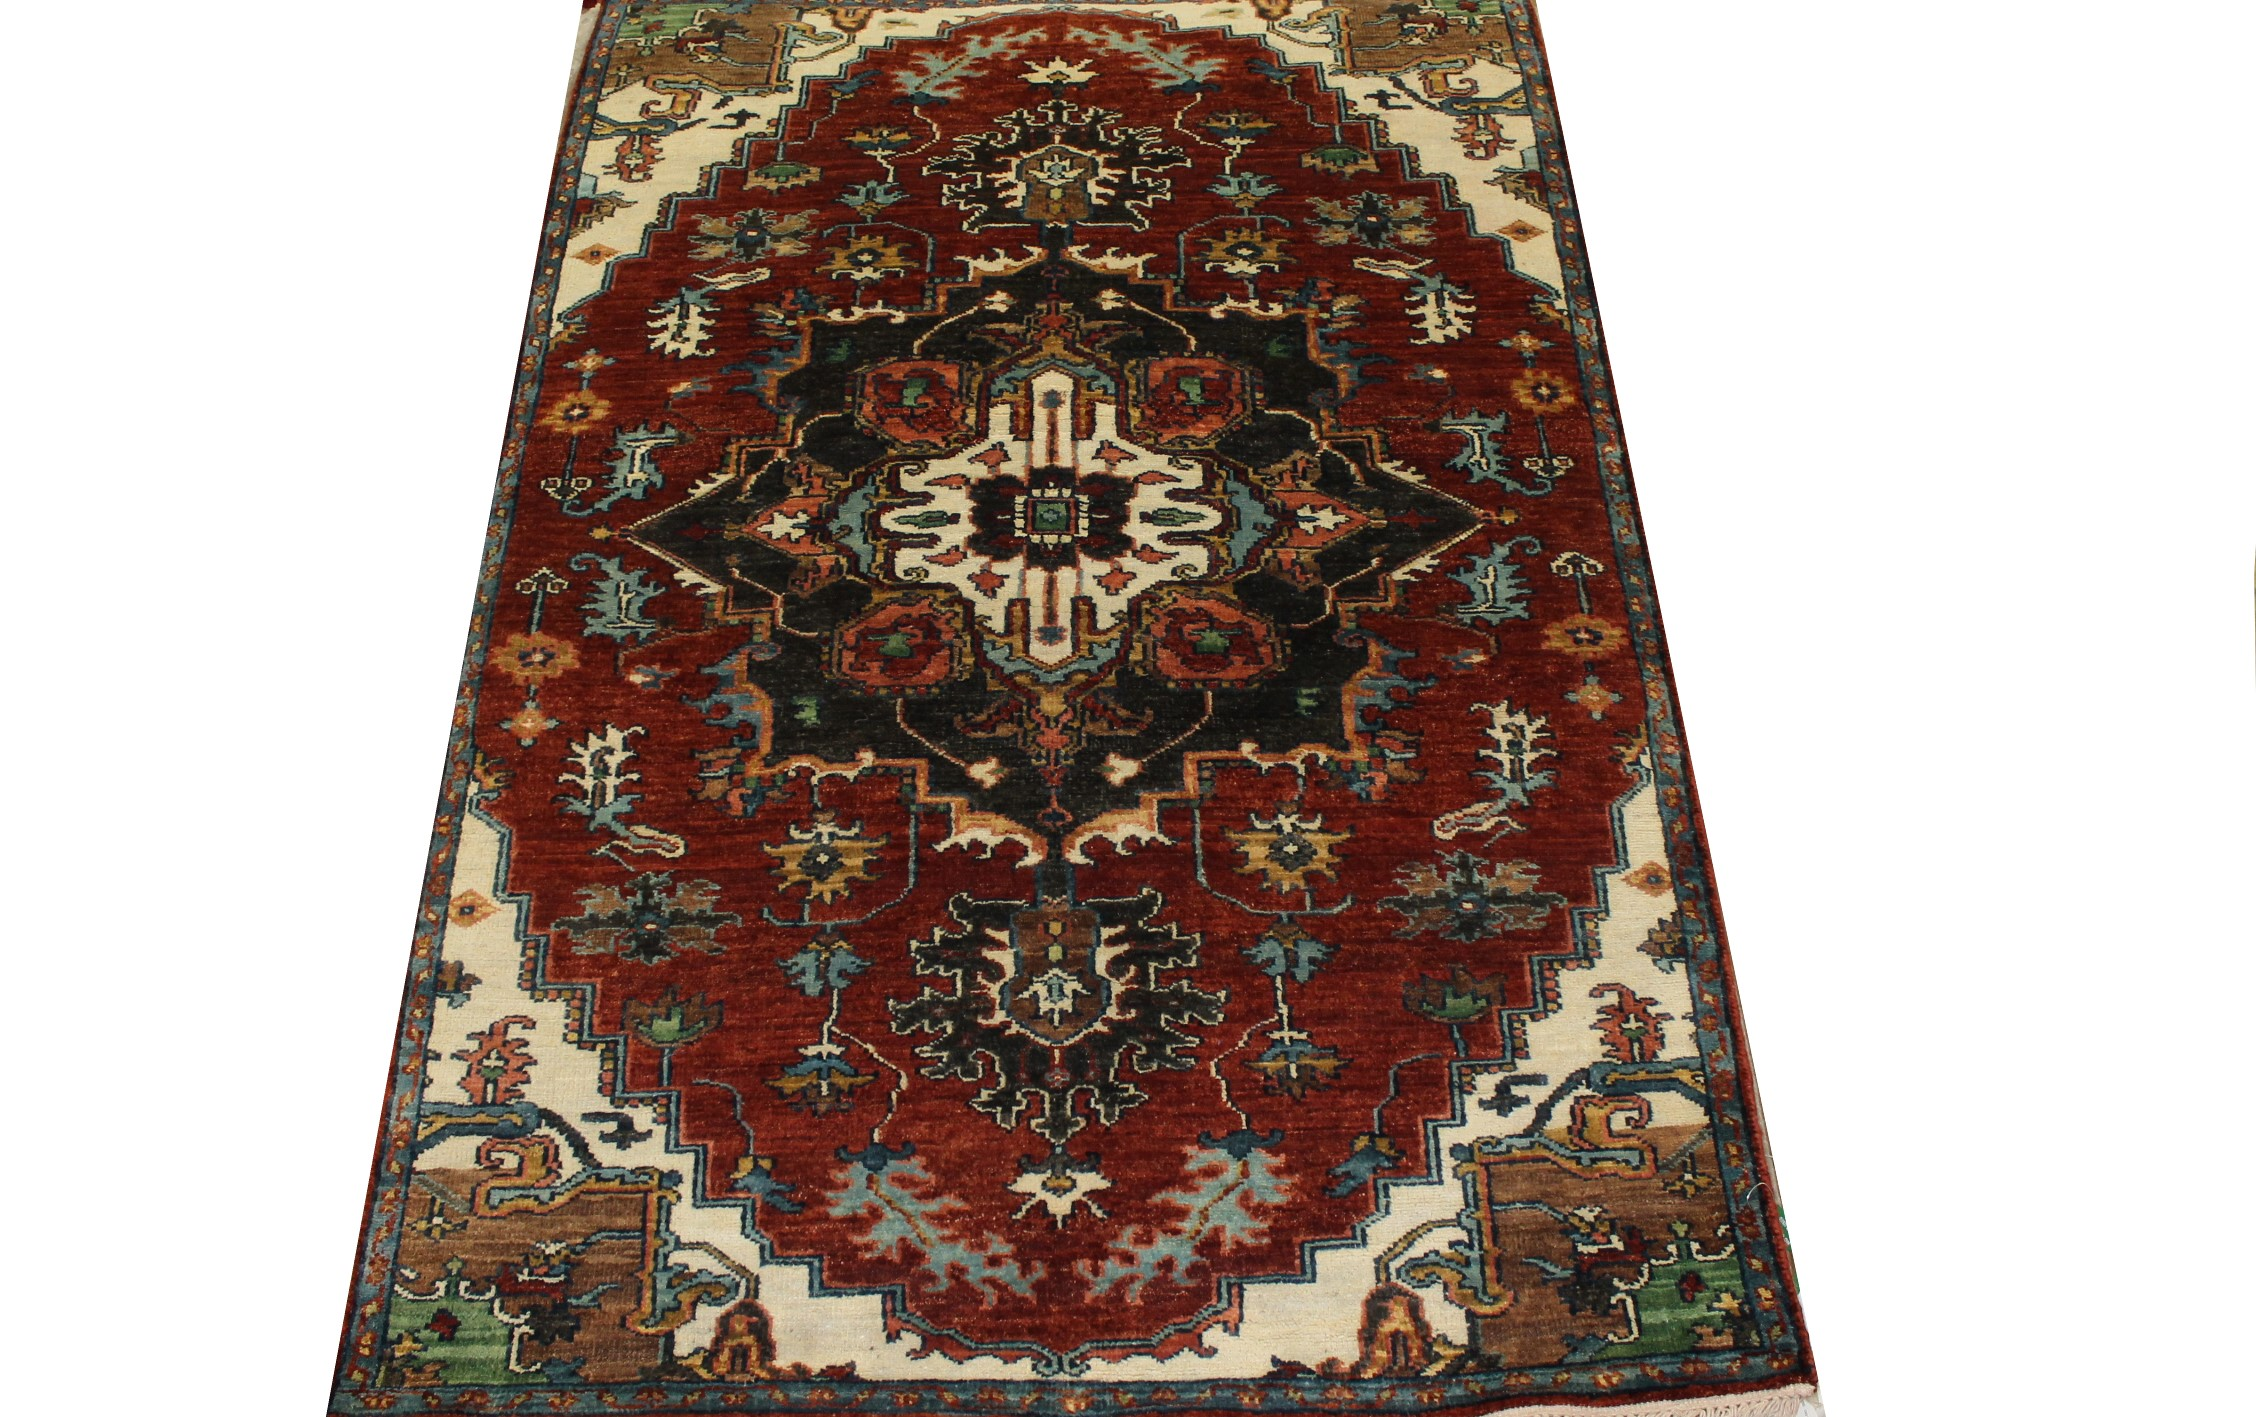 4x6  Hand Knotted Wool Area Rug - MR022893